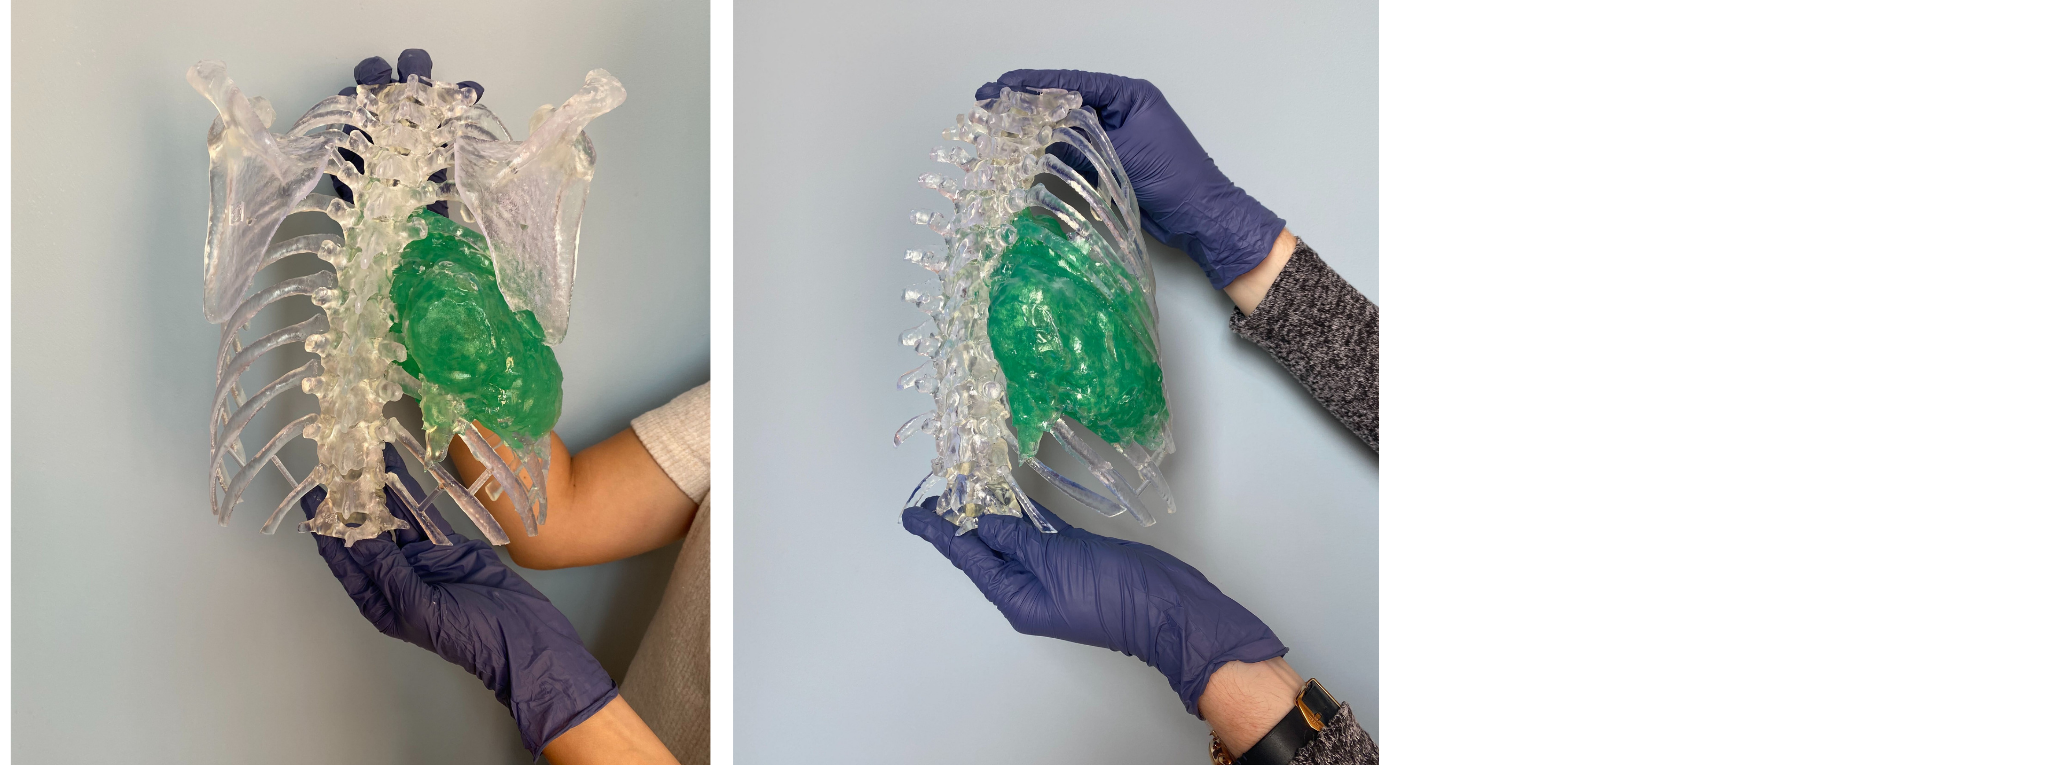 3D printed Complex Spinal Sarcoma